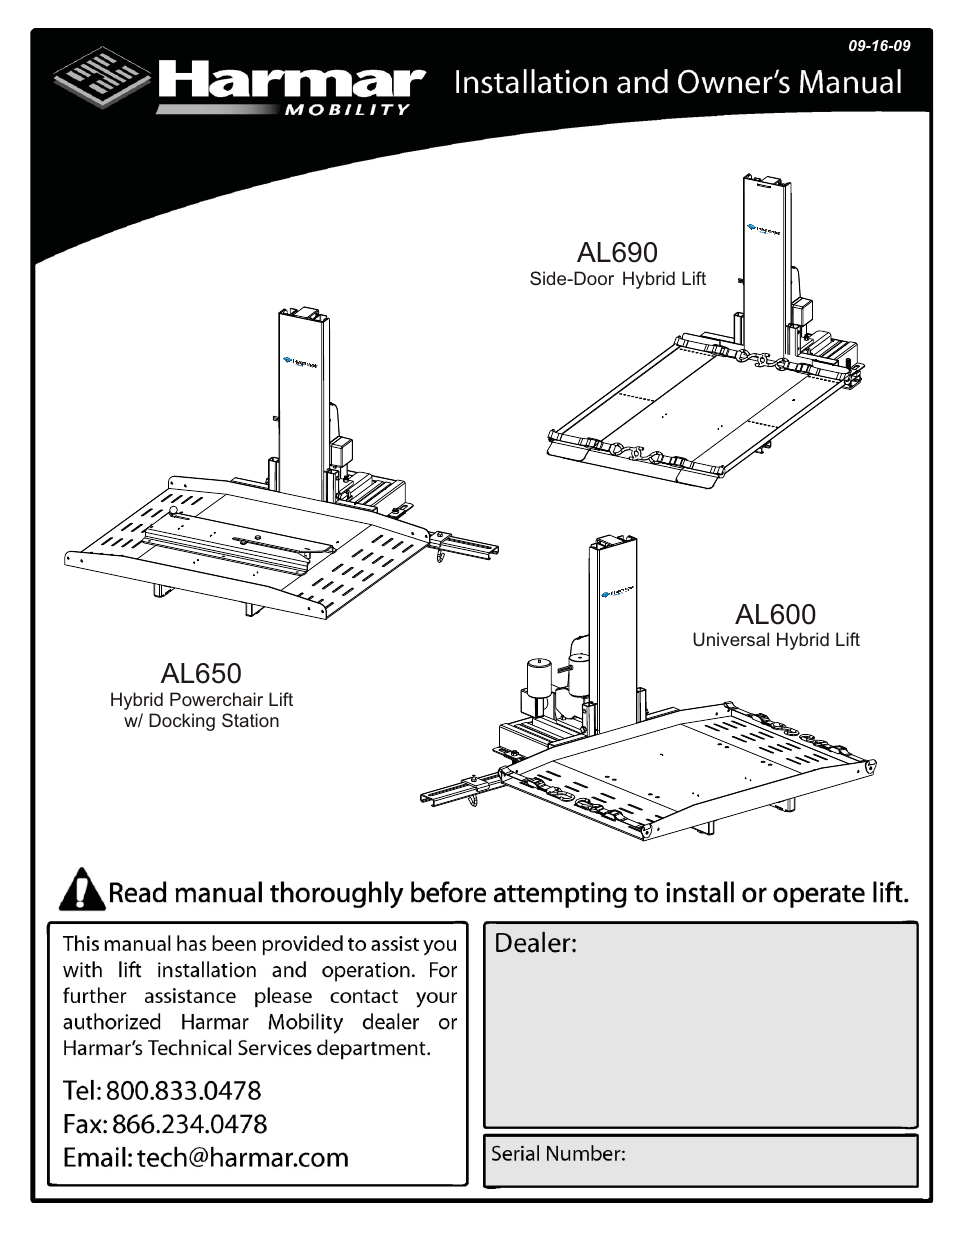 Harmar Mobility AL600 User Manual | 20 pages | Also for ... on